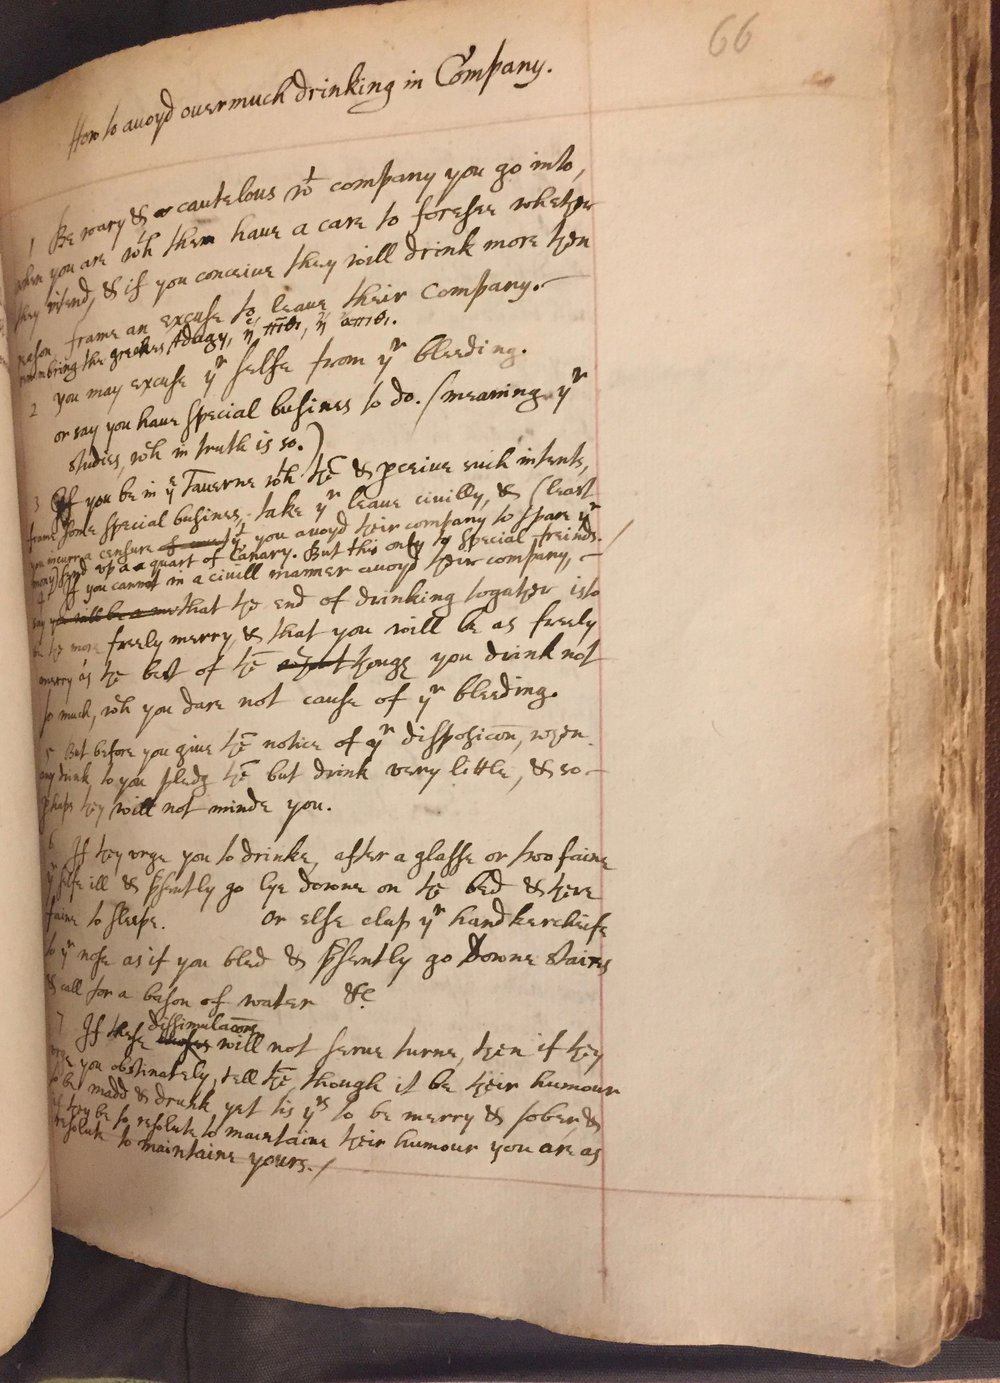 'How to avoyd overmuch drinking in Company' from Pagitt's Memorandum Book. AD MS. 4174 ff.66-7.